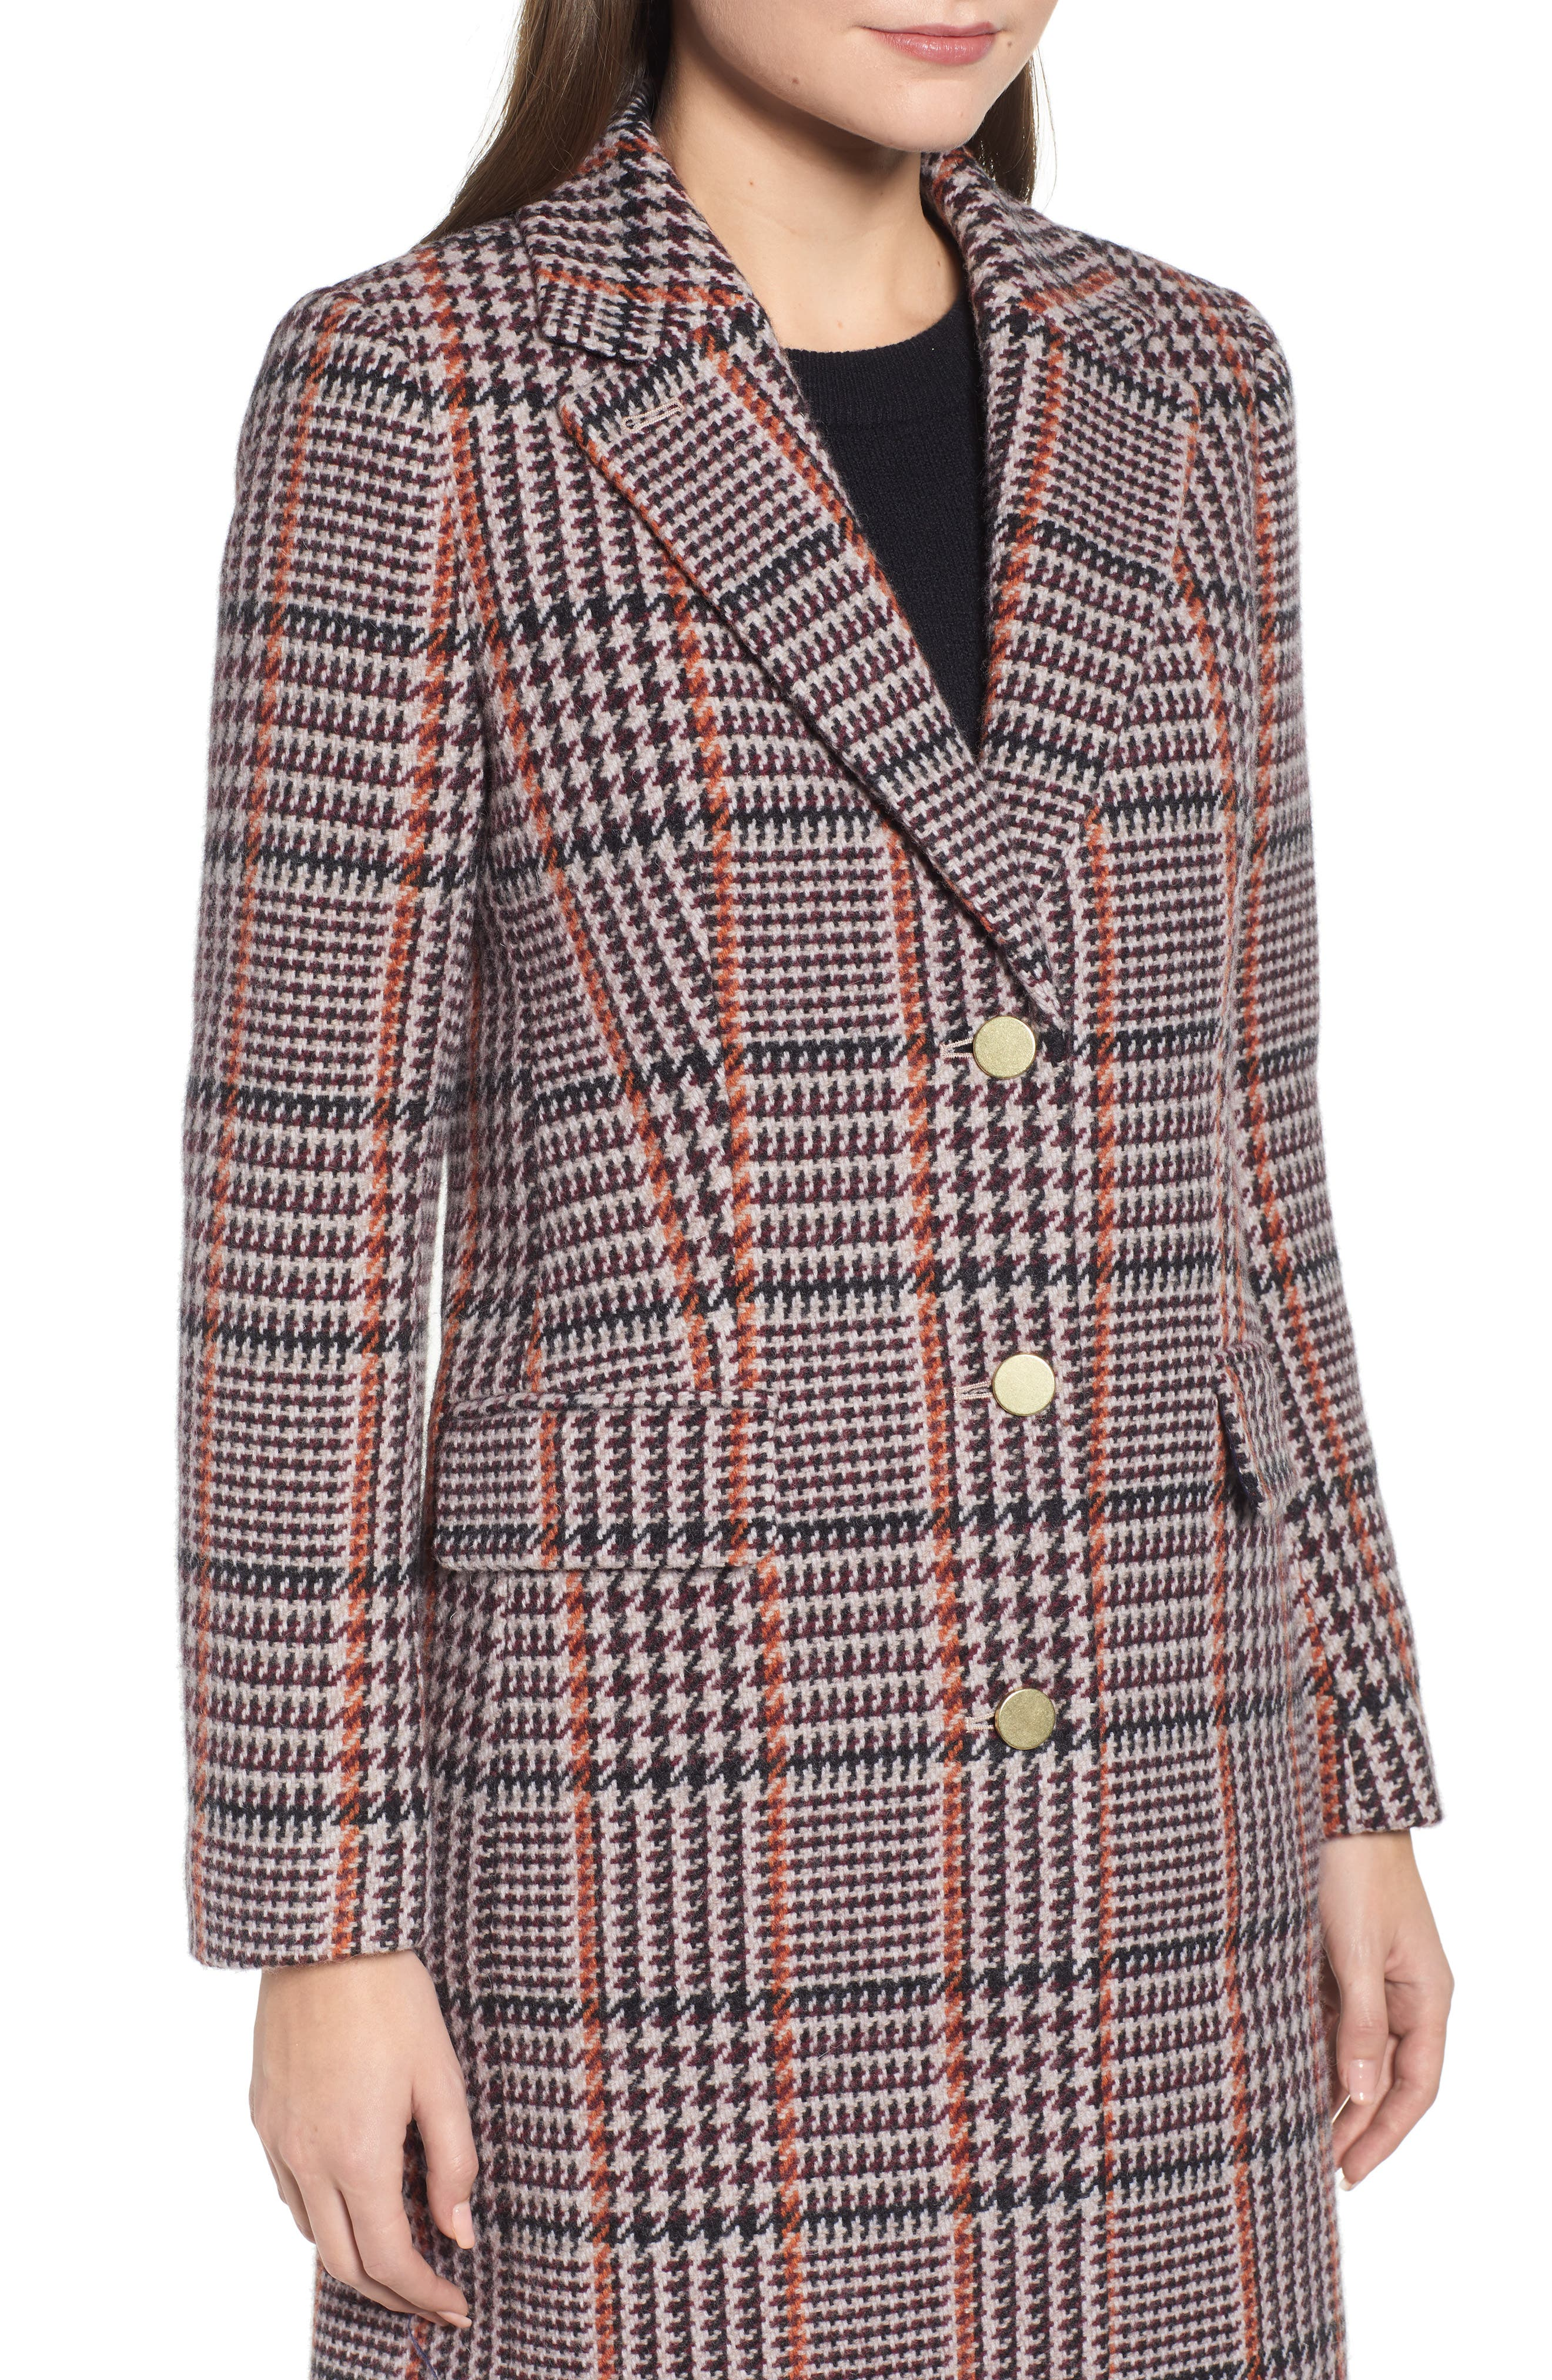 J.CREW, Plaid Single Breasted Topcoat, Alternate thumbnail 4, color, 600